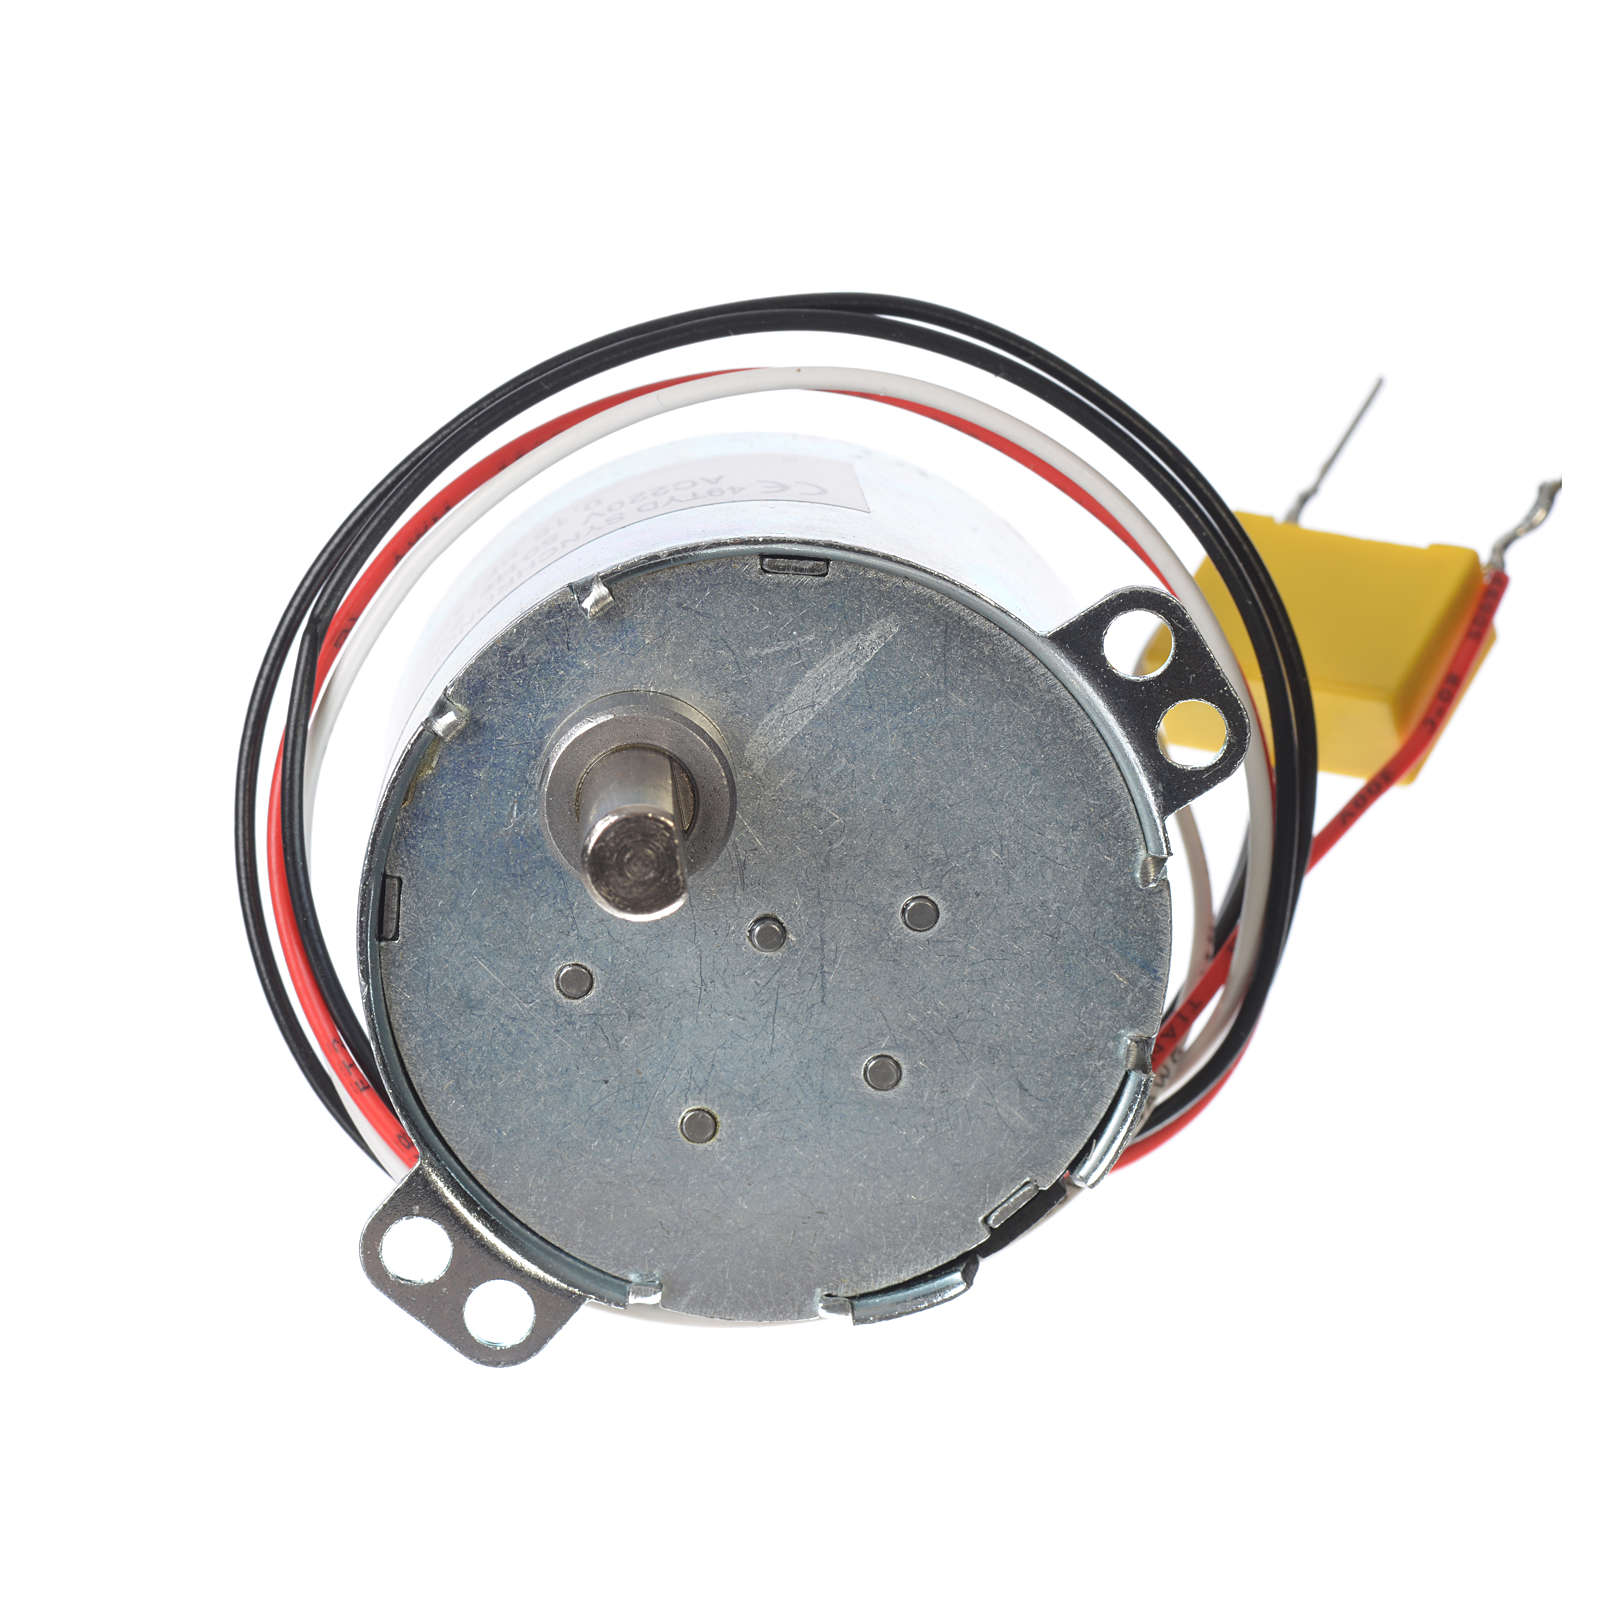 Motor reductor for nativities MV 20spin/minute 4